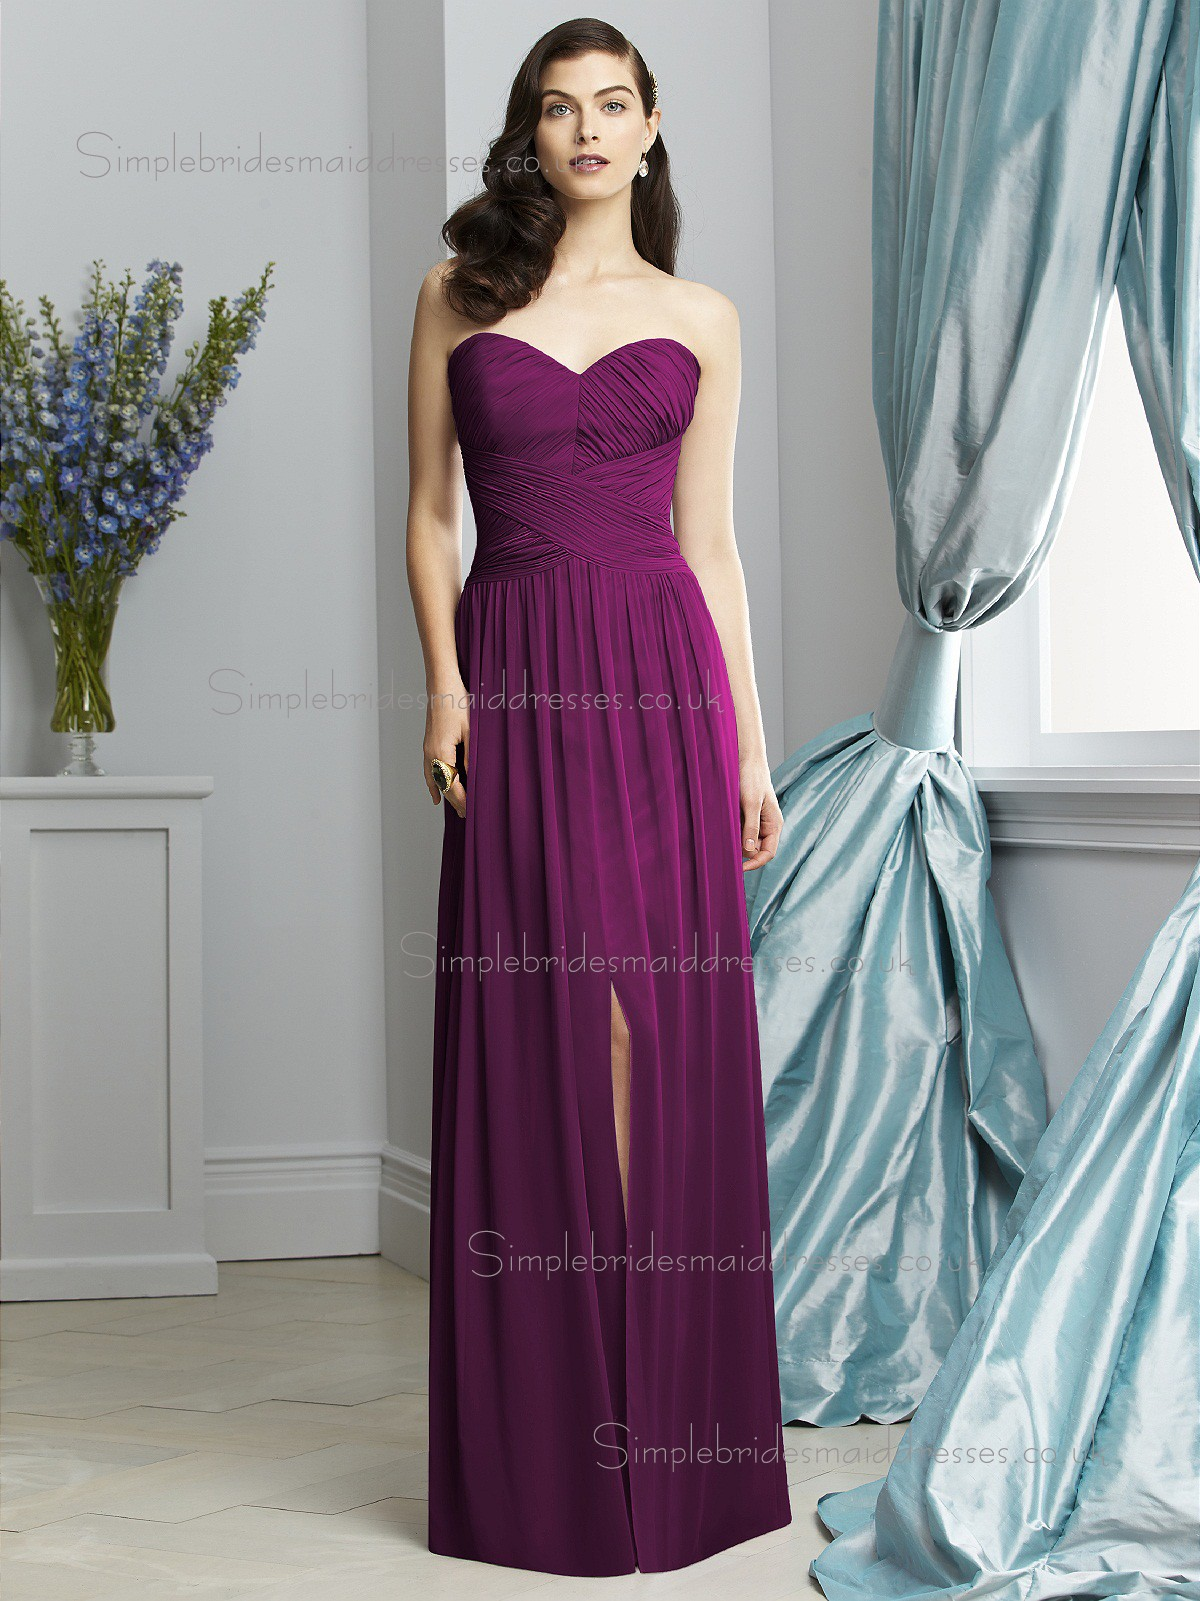 wild berry purple chiffon draped natural sleeveless